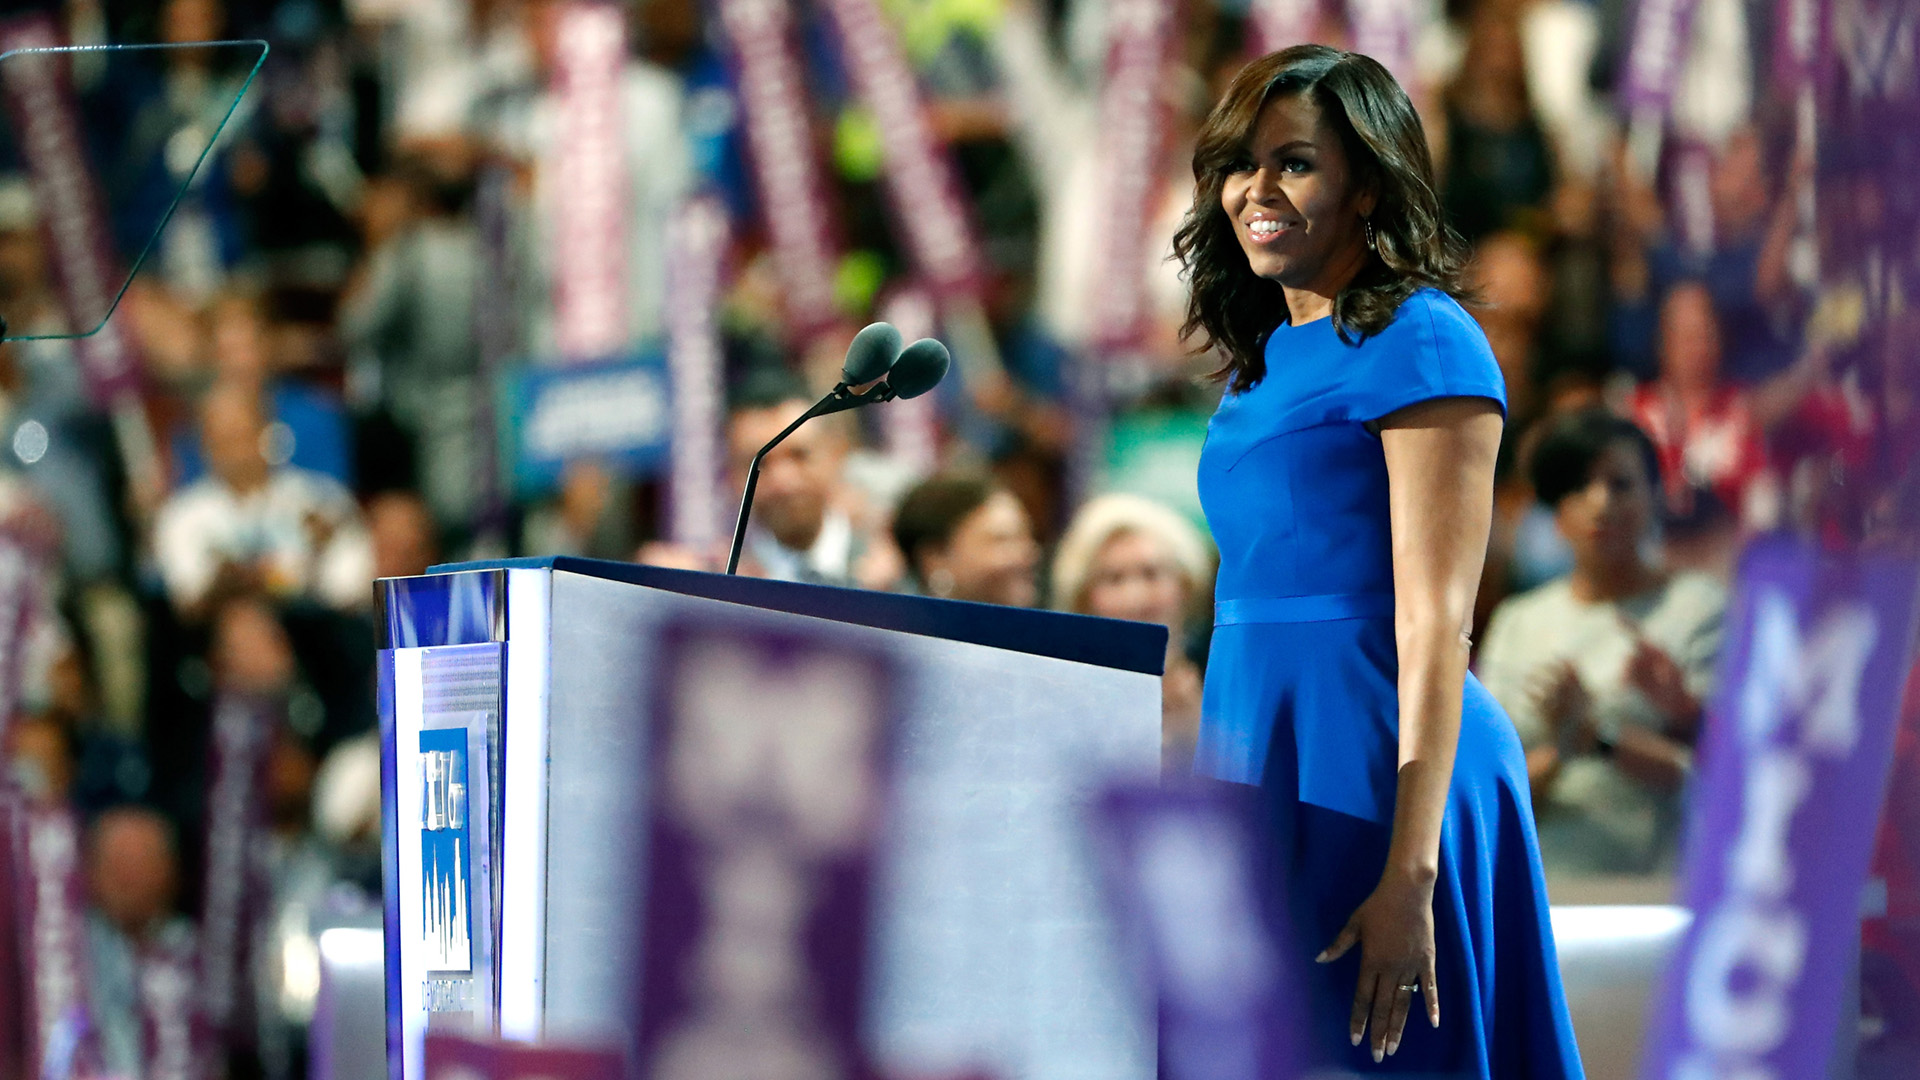 First lady Michelle Obama's full speech at the 2016 DNC